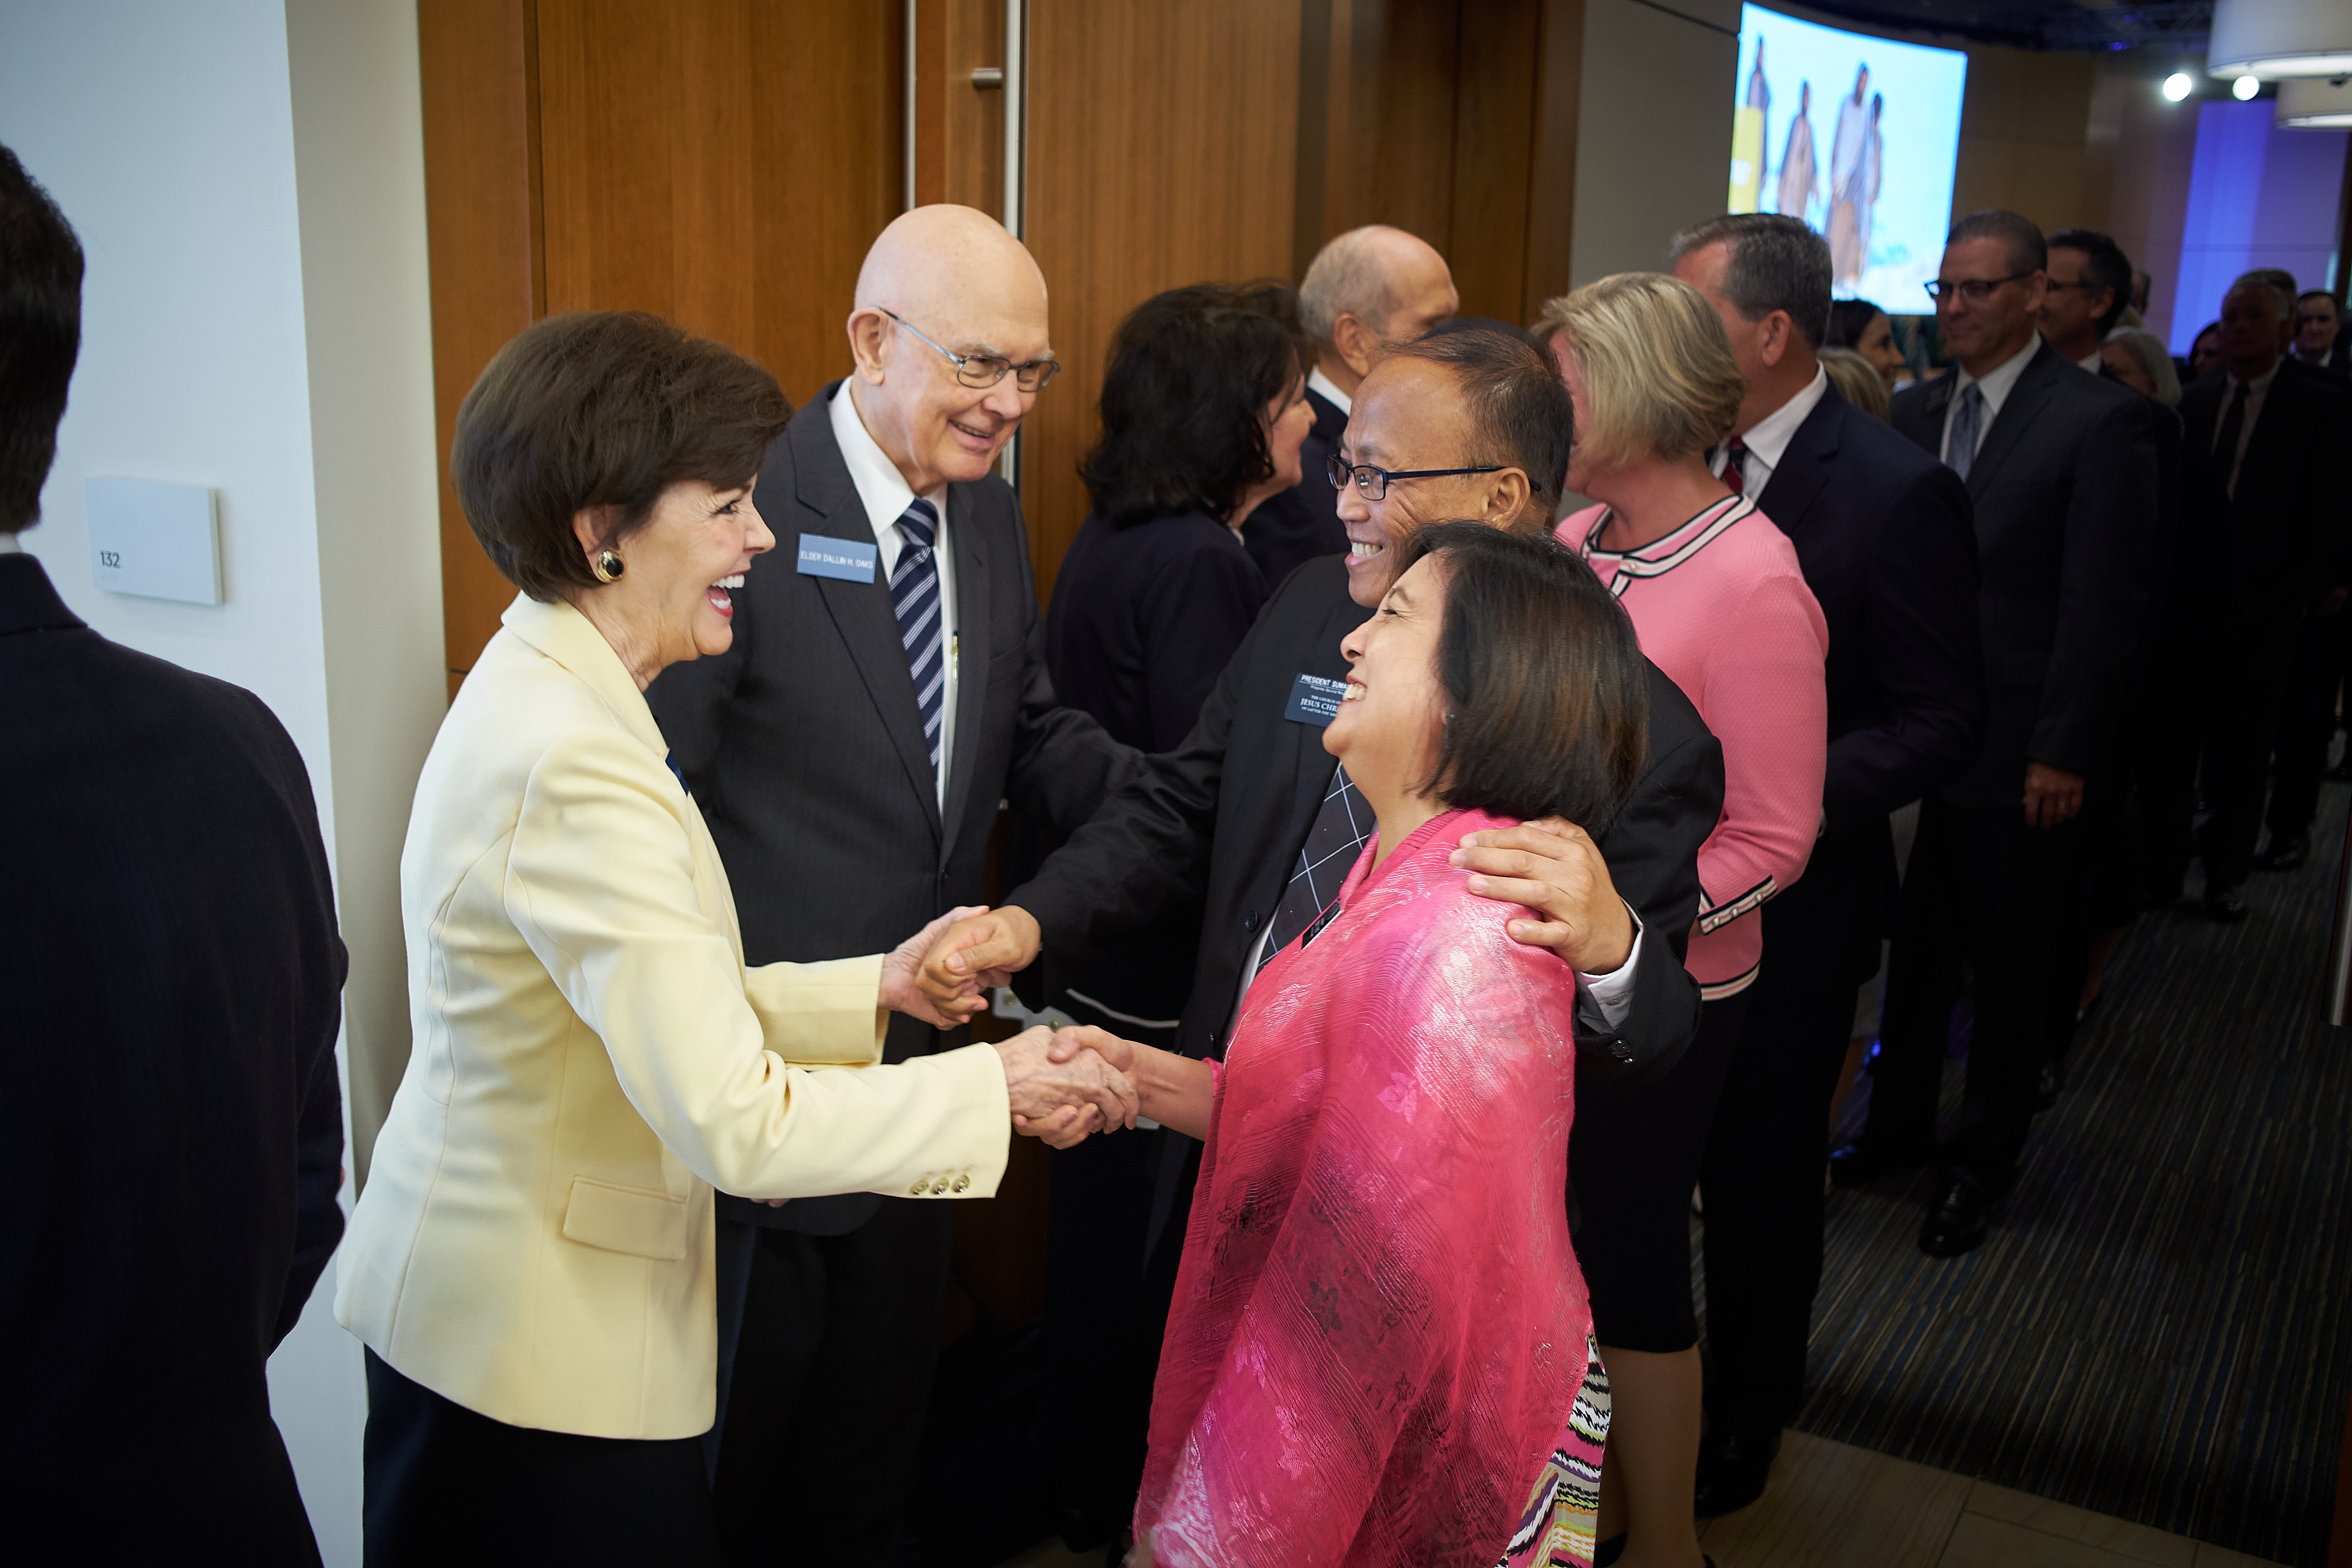 President Dallin H. Oaks of the First Presidency and his wife, Sister Kristen Oaks, greet new mission presidents and their wives during the Mission Leadership Seminar held in the Provo MTC June 24-26.